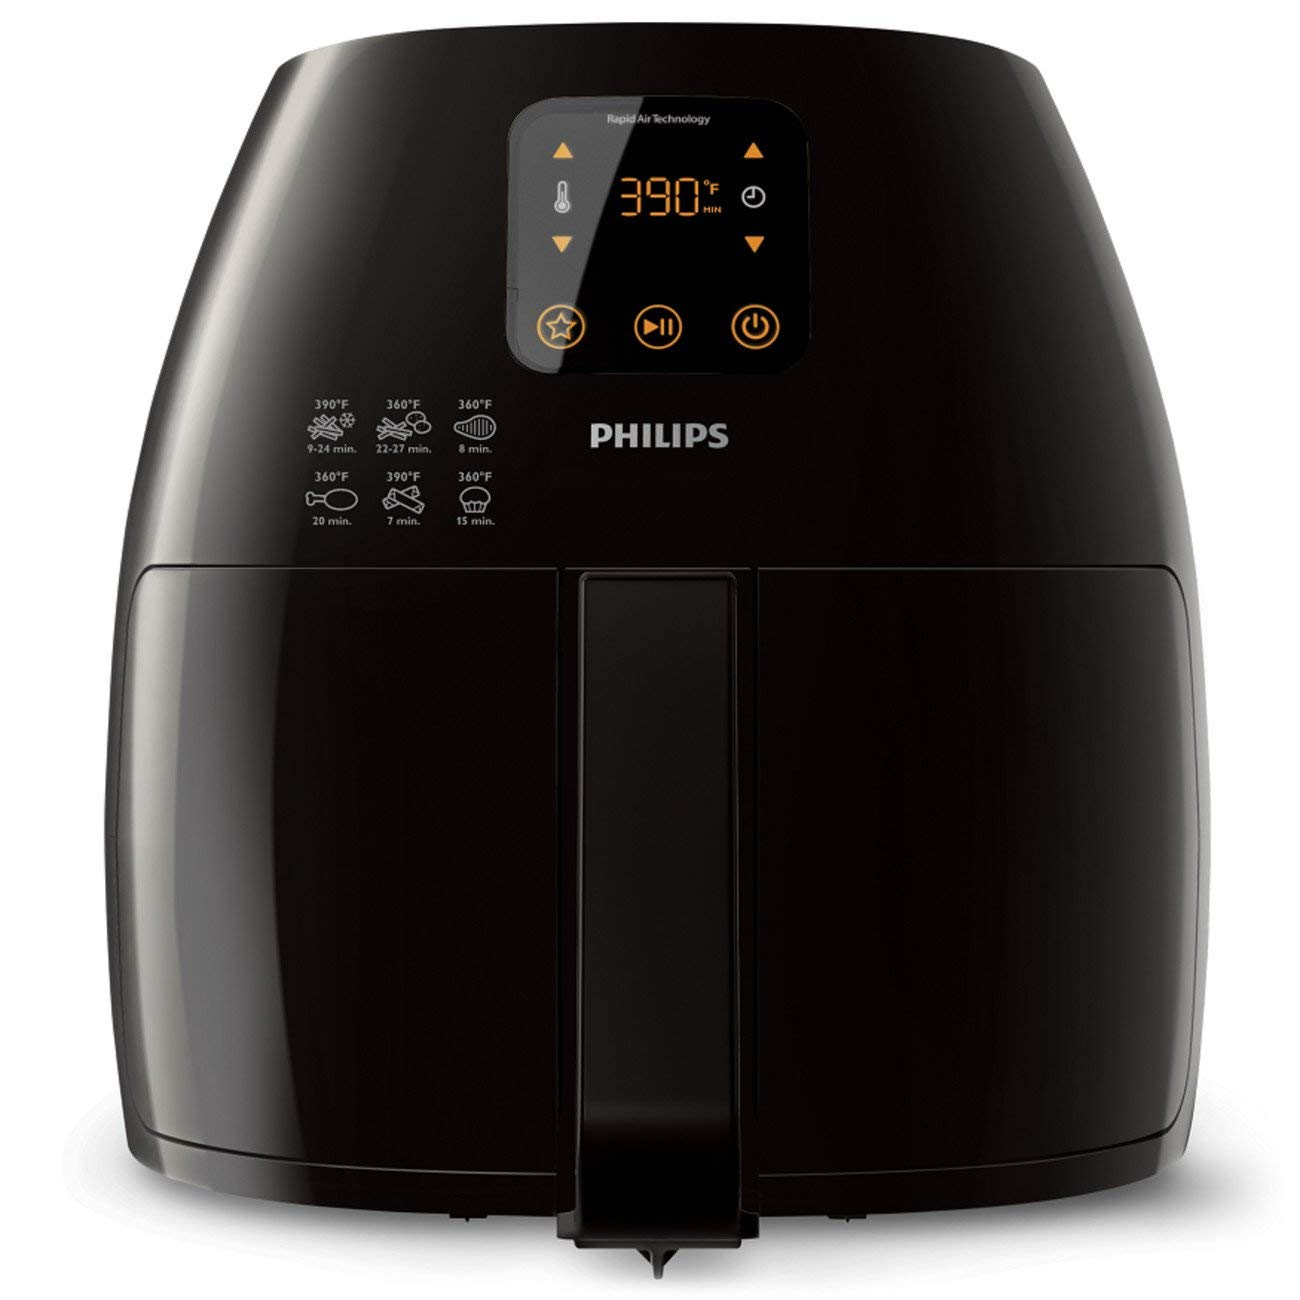 Philips HD9240 94 Avance XL Digital Airfryer